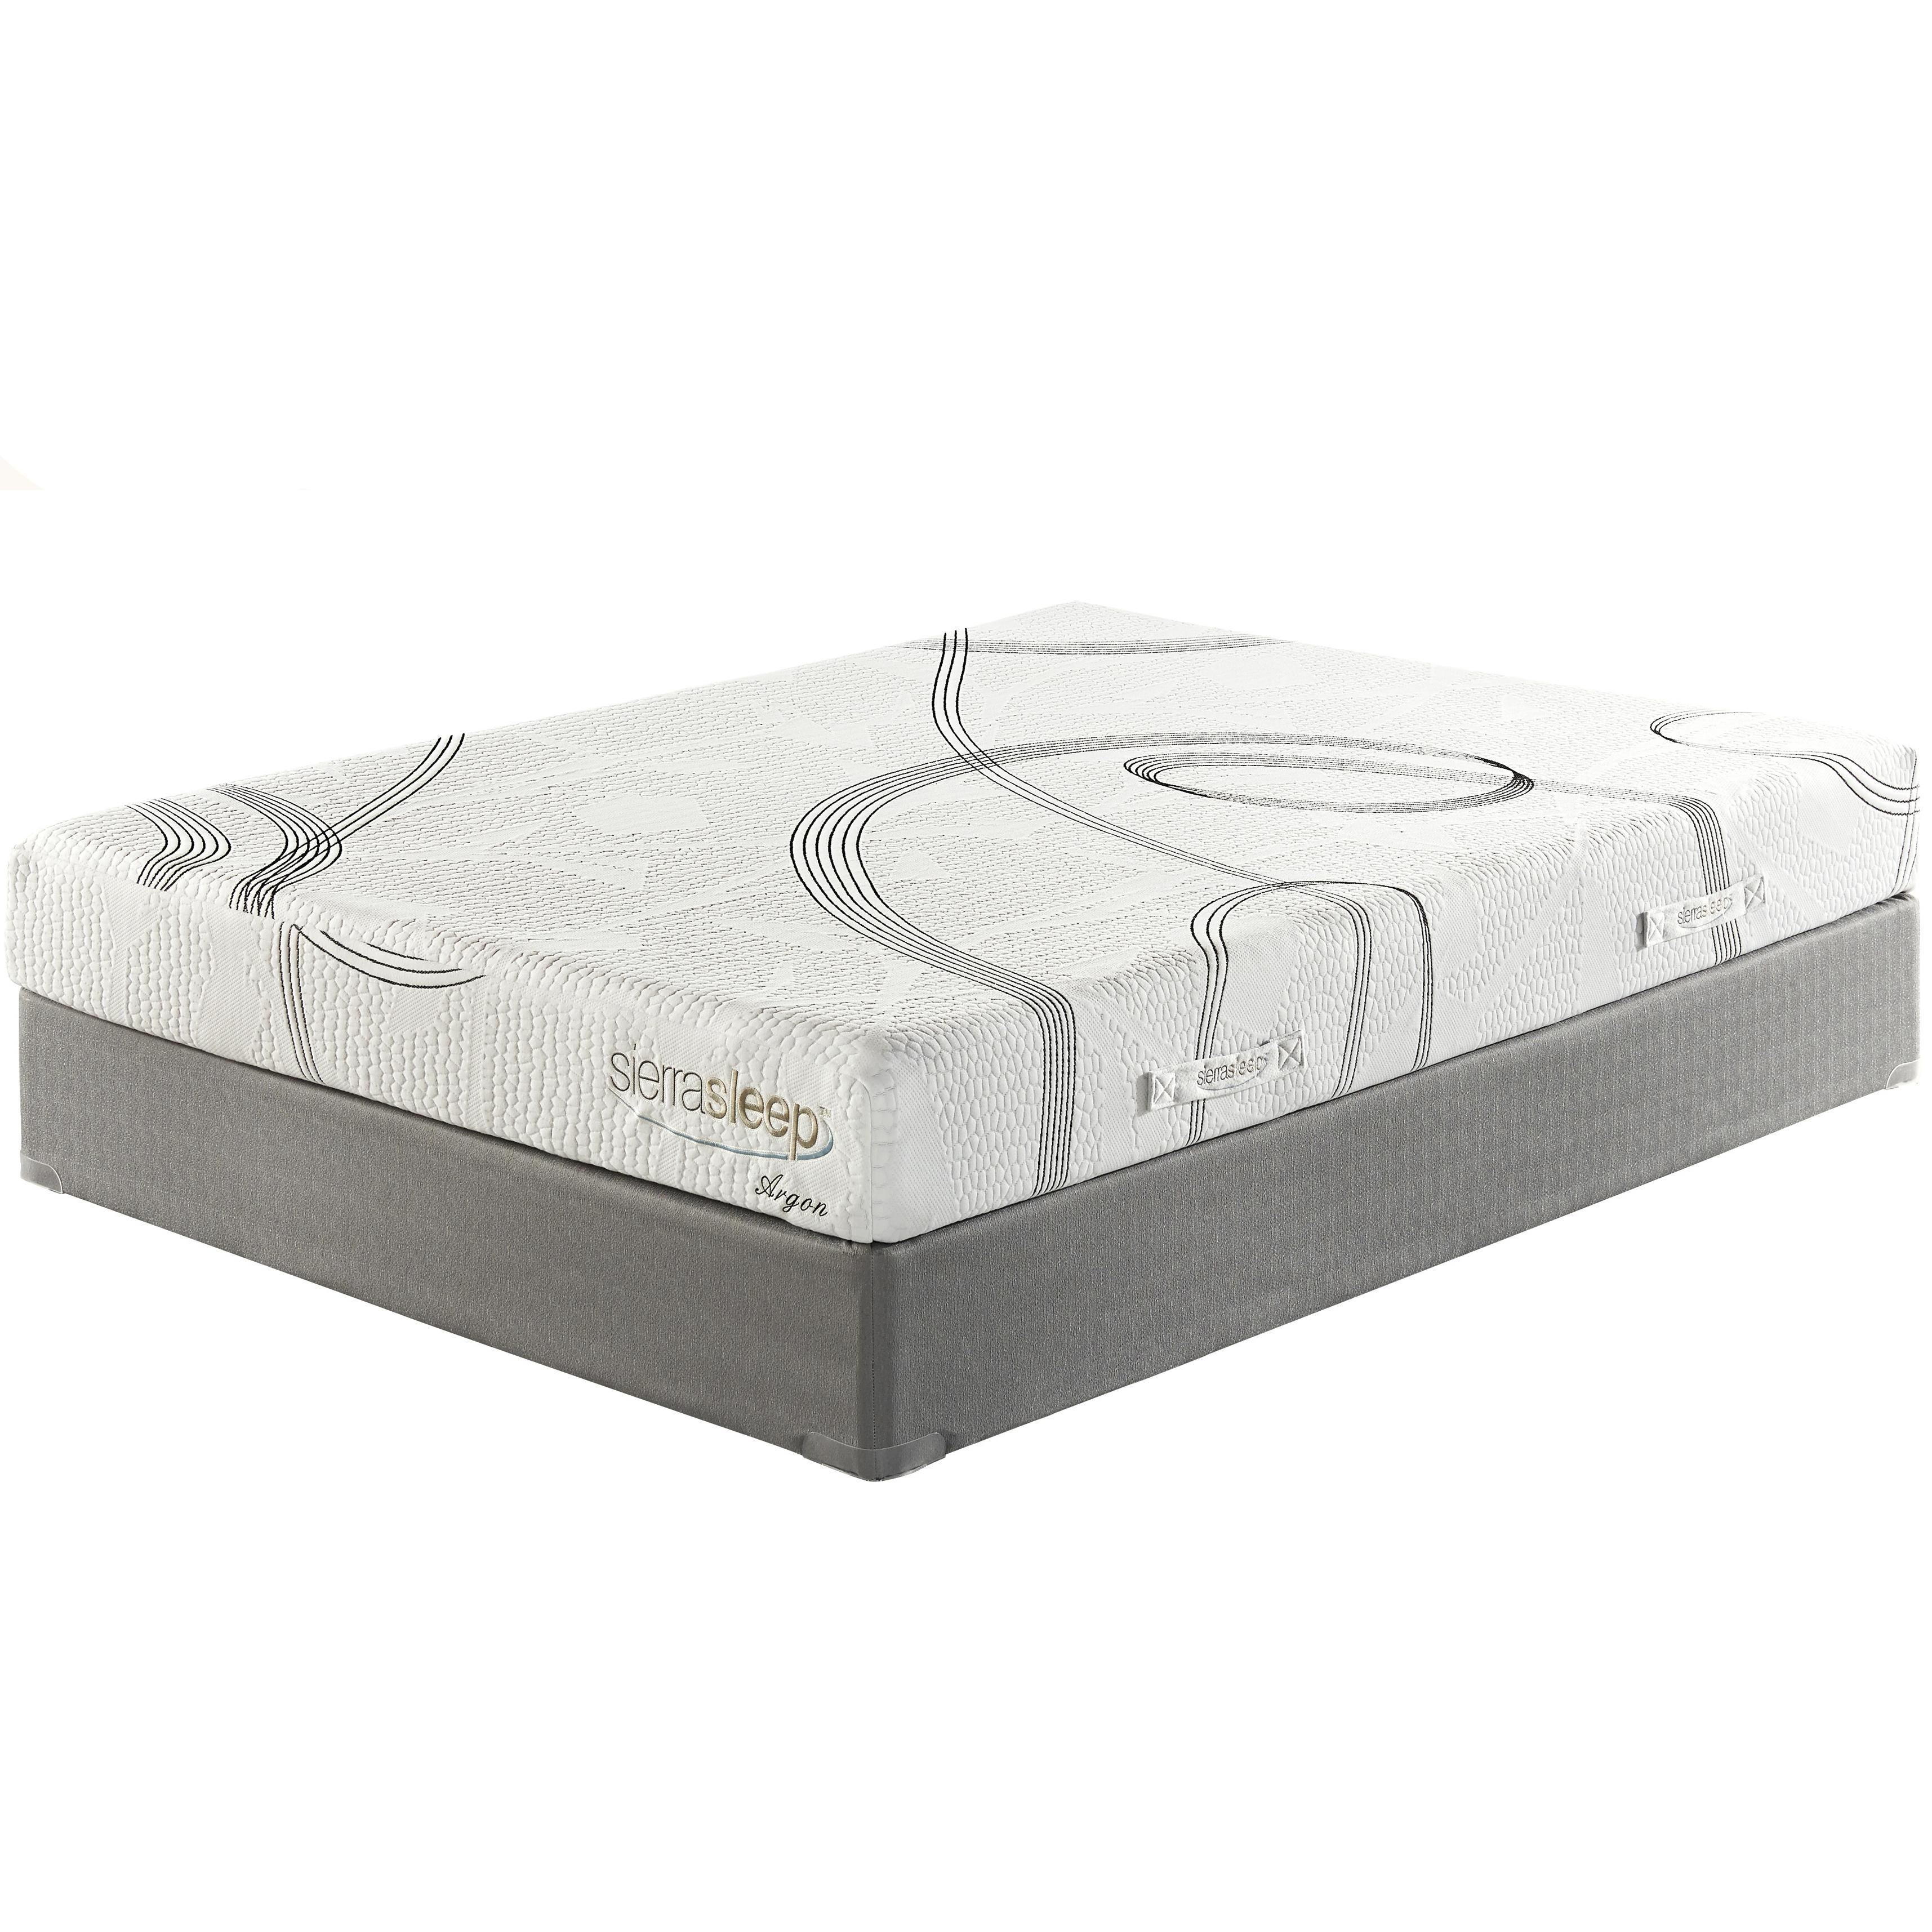 Sierra Sleep 8 Inch Plush Memory Foam Full Plush Mattress - Item Number: M99021